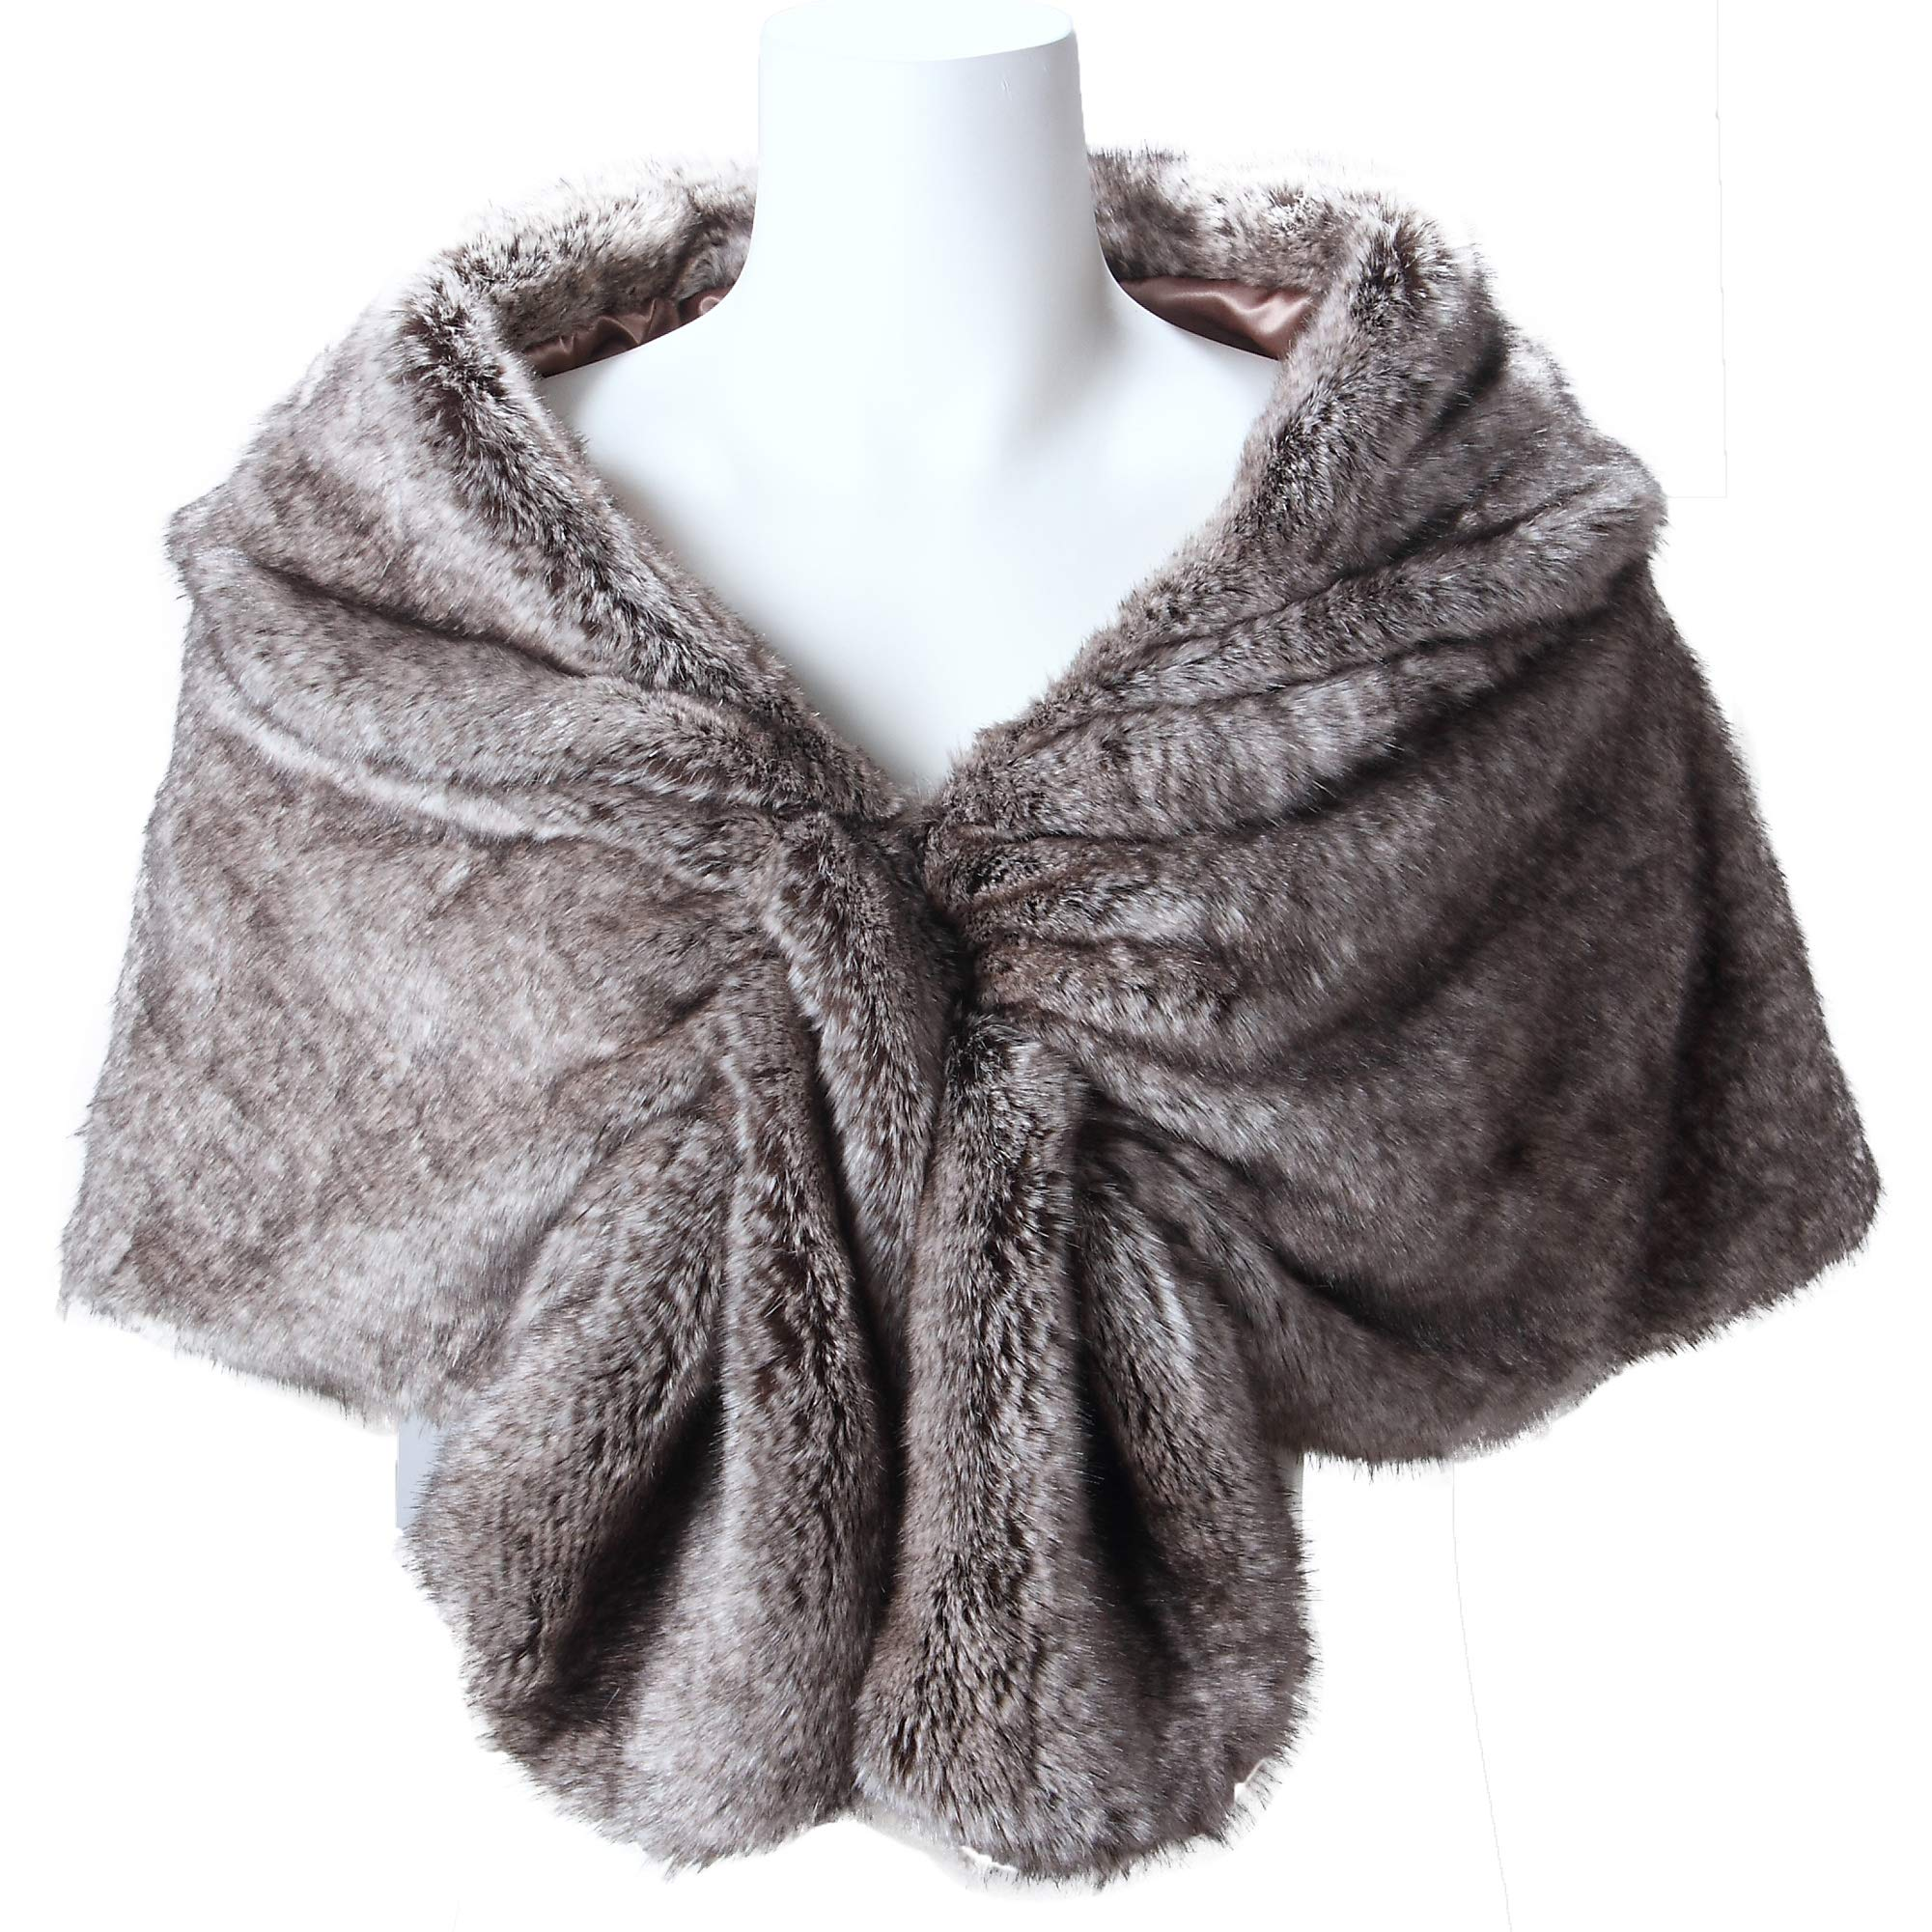 Caracilia Elegant Bridal Wedding Faux Fur Shawl Stole Wrap Shrug CA95 , Rabbit Fur Grey , Large by Caracilia (Image #3)